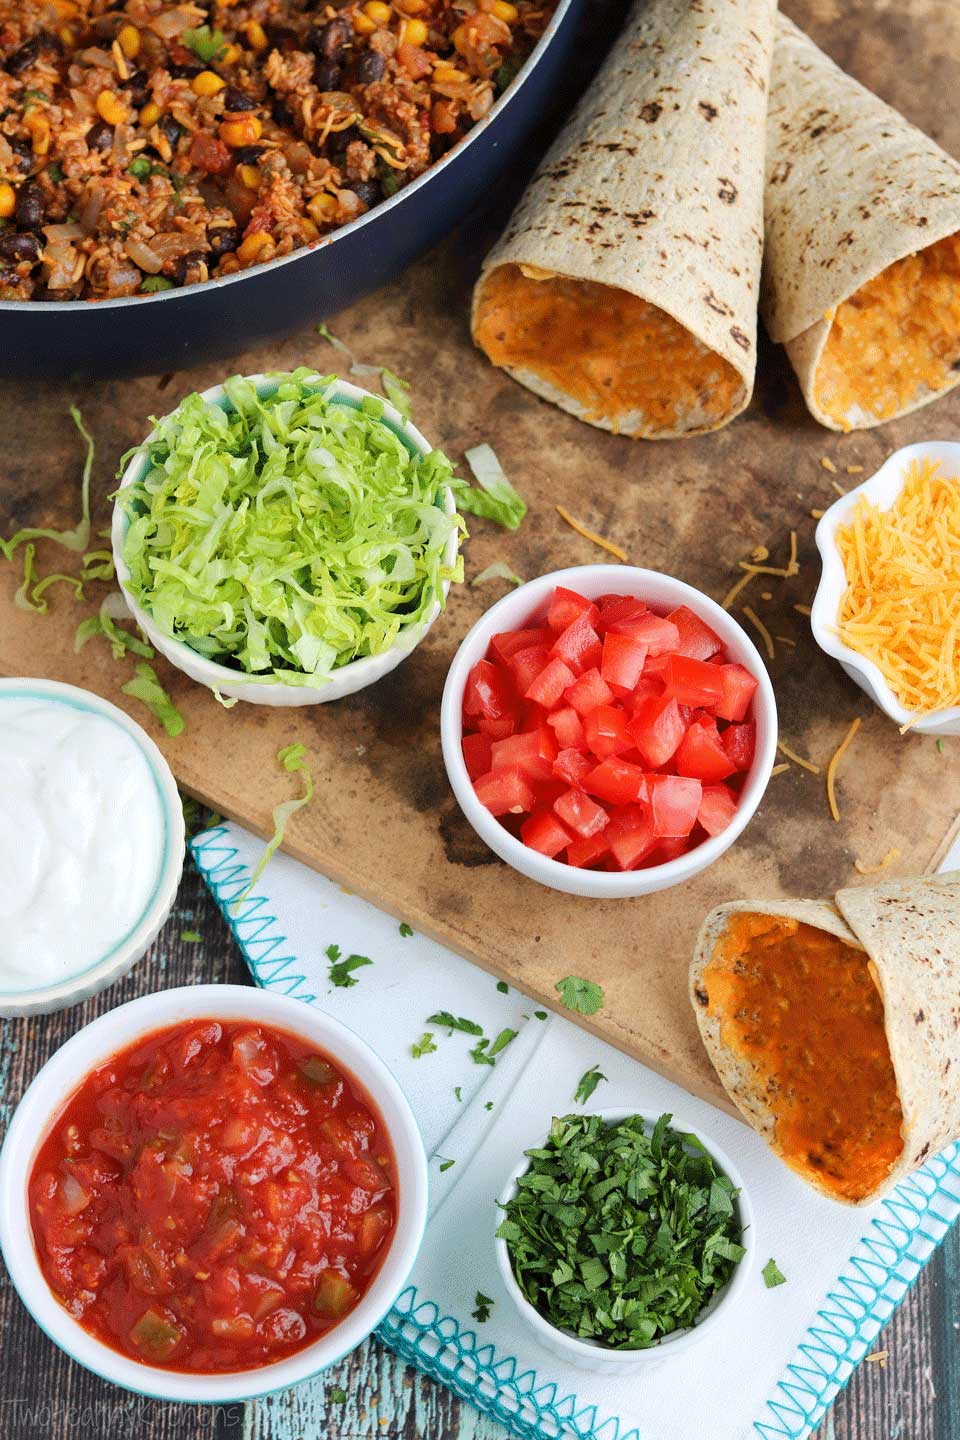 You can also make up a big batch of Ta-Cones flatbread cones ahead of time, and create a super-fun, do it yourself taco bar with plenty of great toppings! It's a creative twist on traditional taco bars, and so portable for backyard parties, tailgating, and campouts!